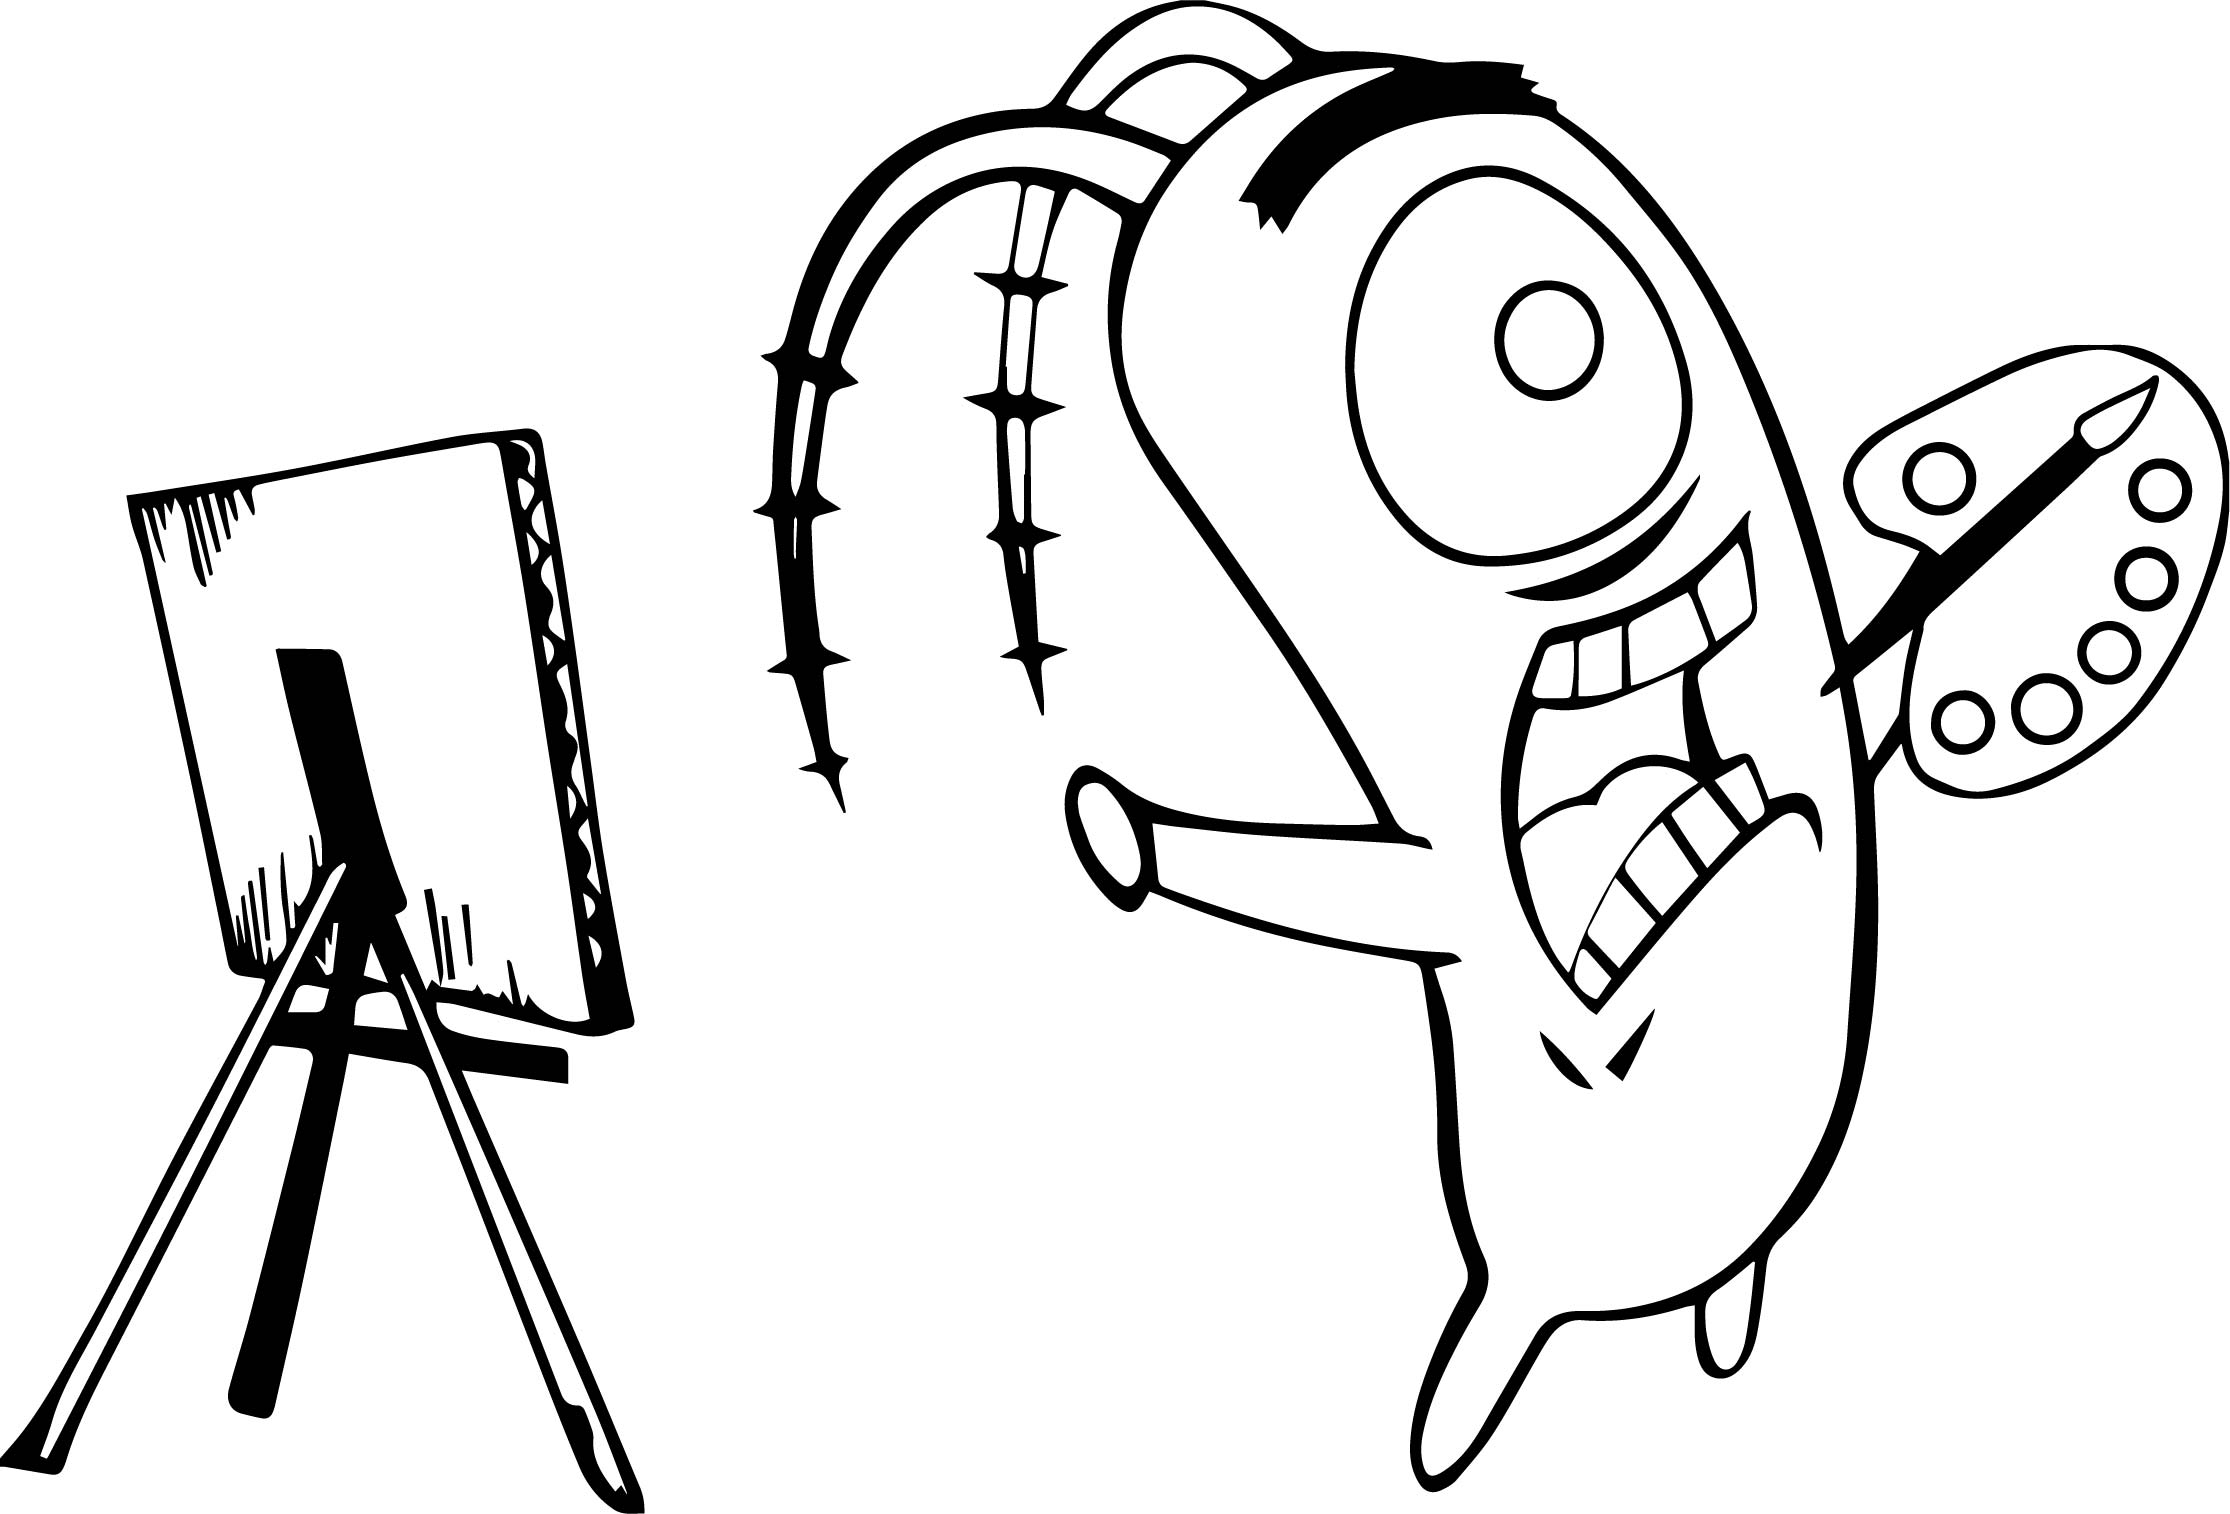 Coloring Pages Spongebob Spongebob Cartoon Best Perfect Coloring Page Wecoloringpage